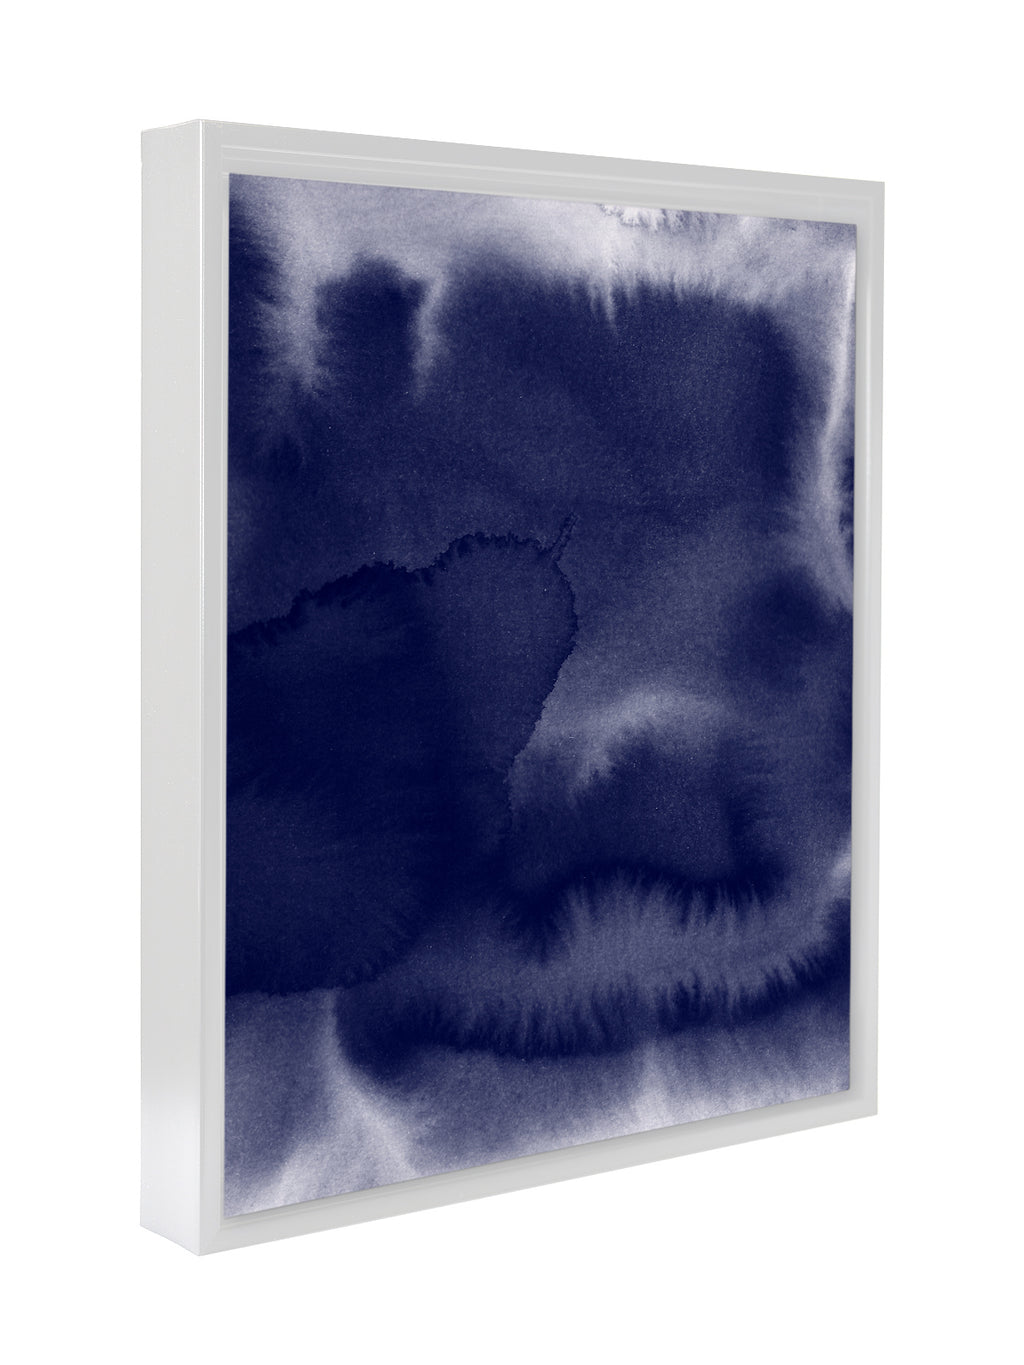 BLUE STAIN Premium Framed Gallery Wrap By Honeytree Prints